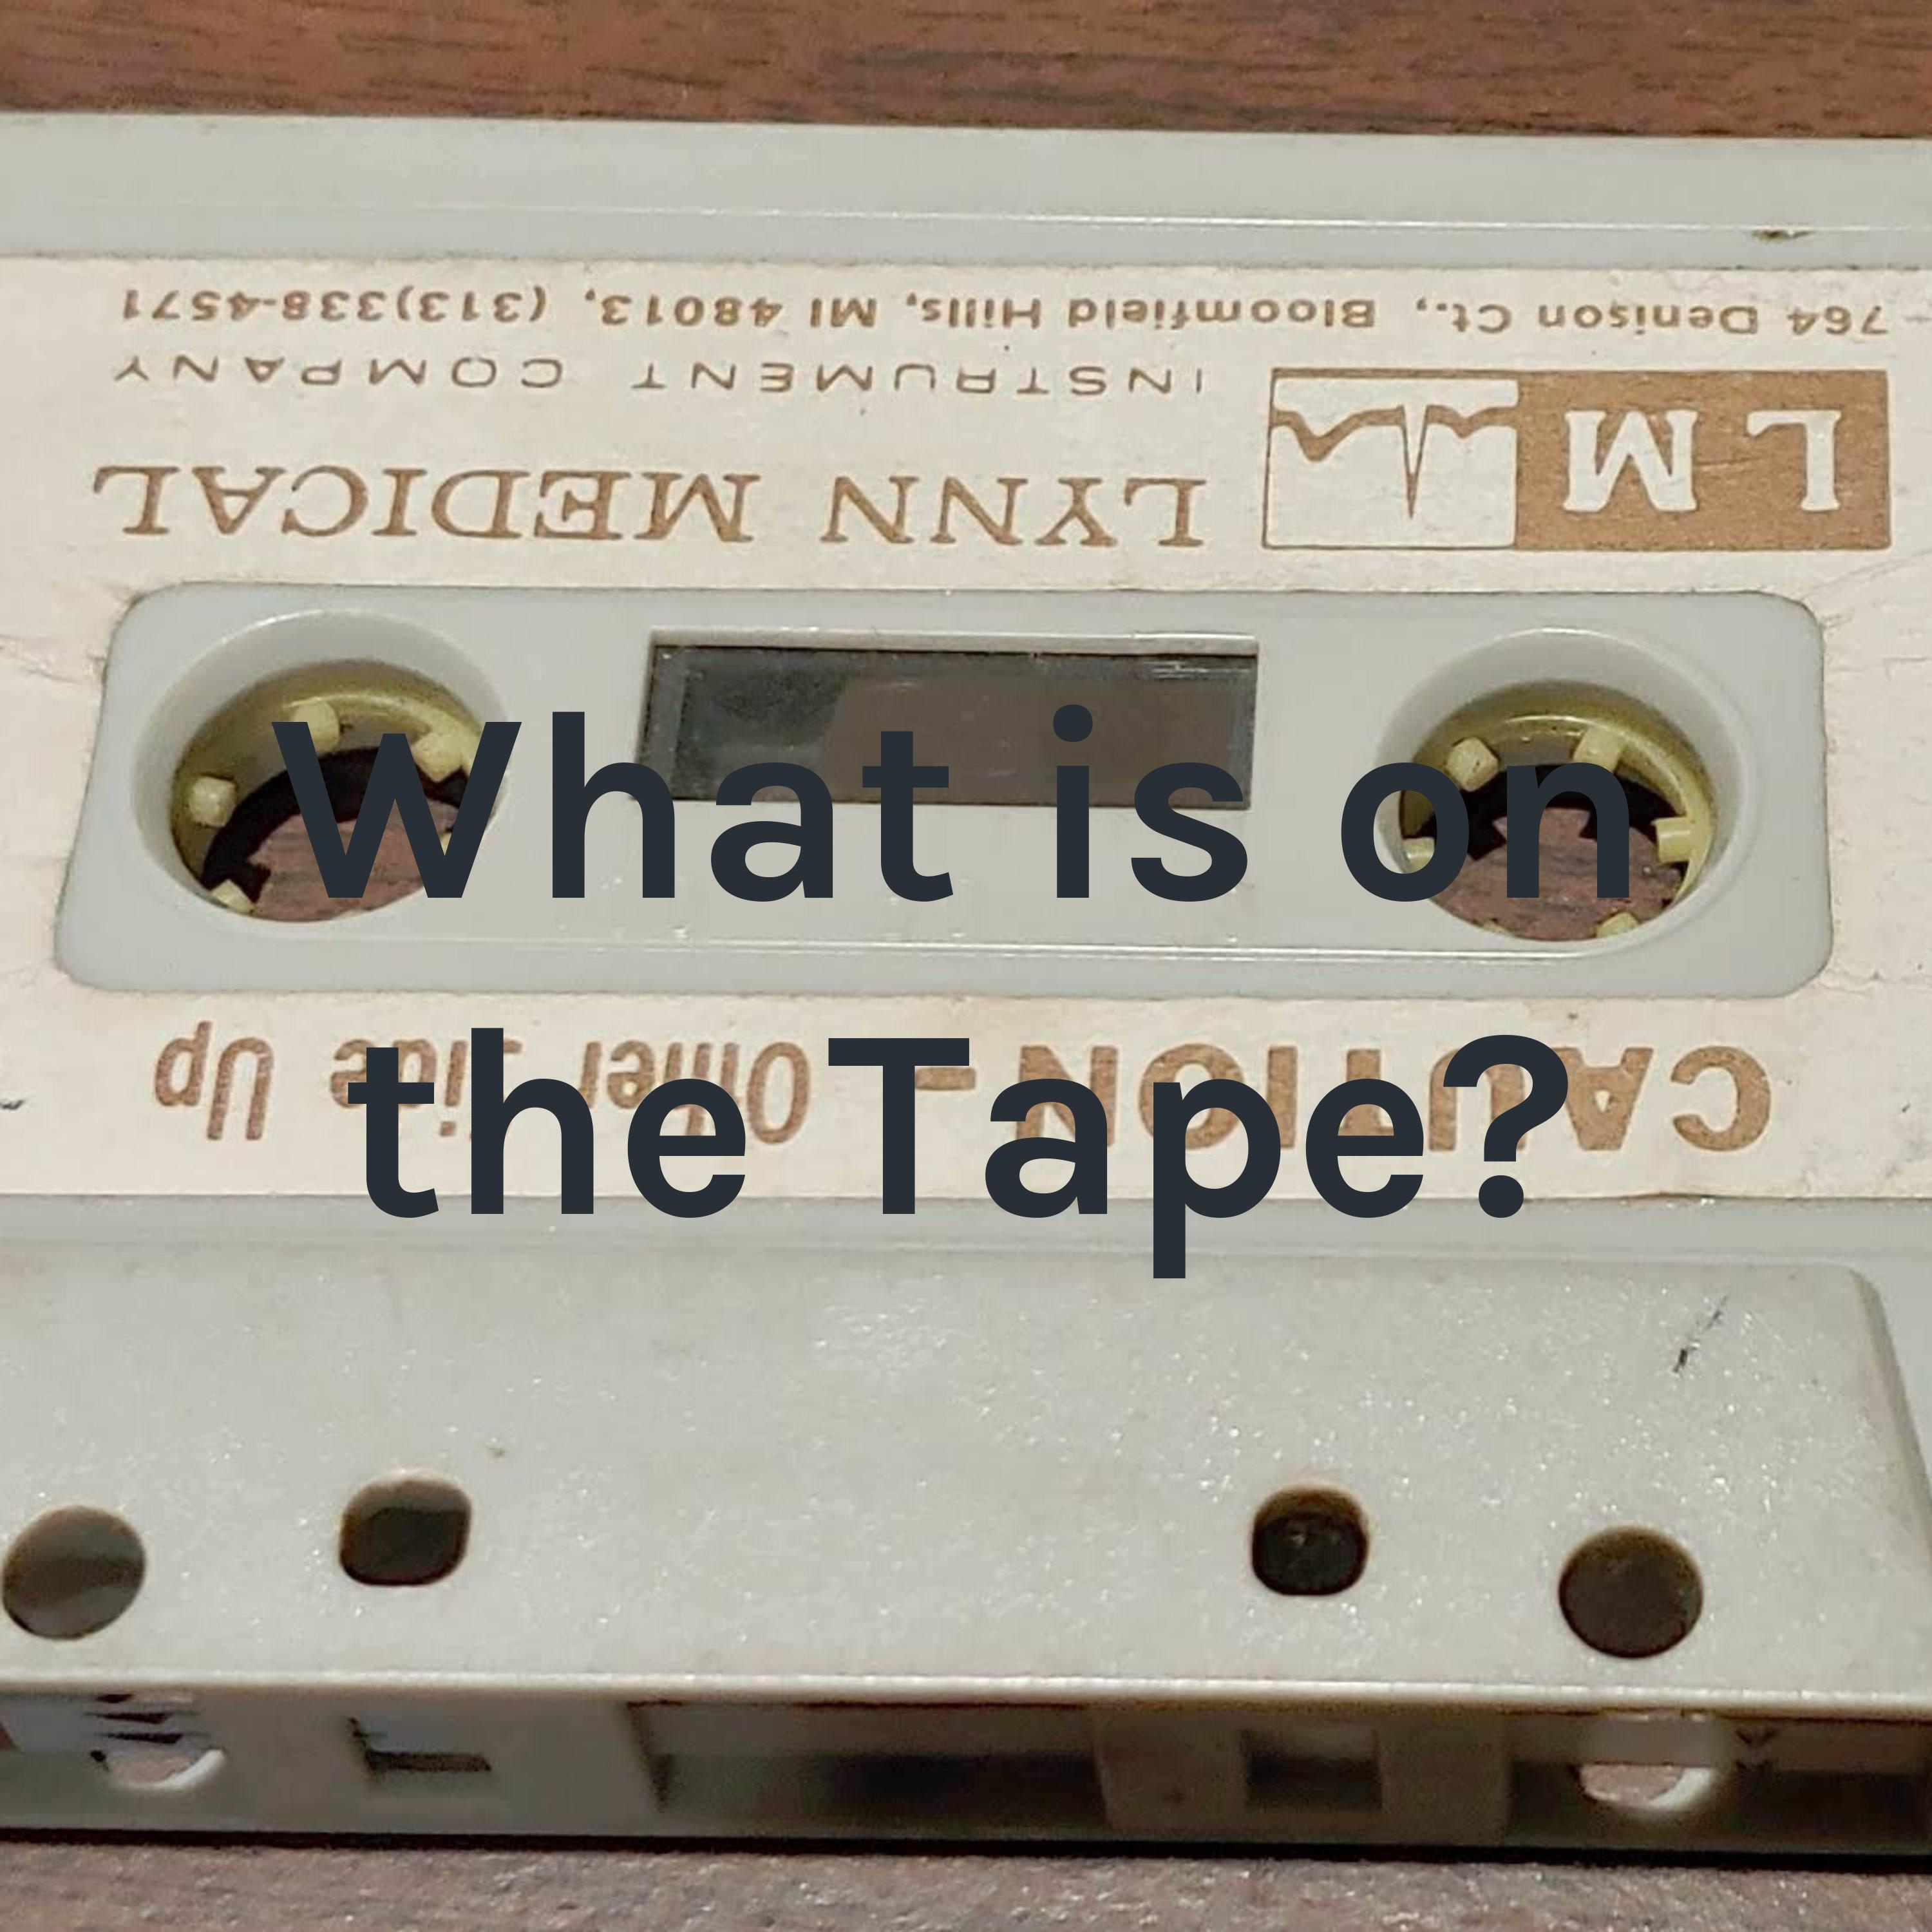 What is on the tape, the second one